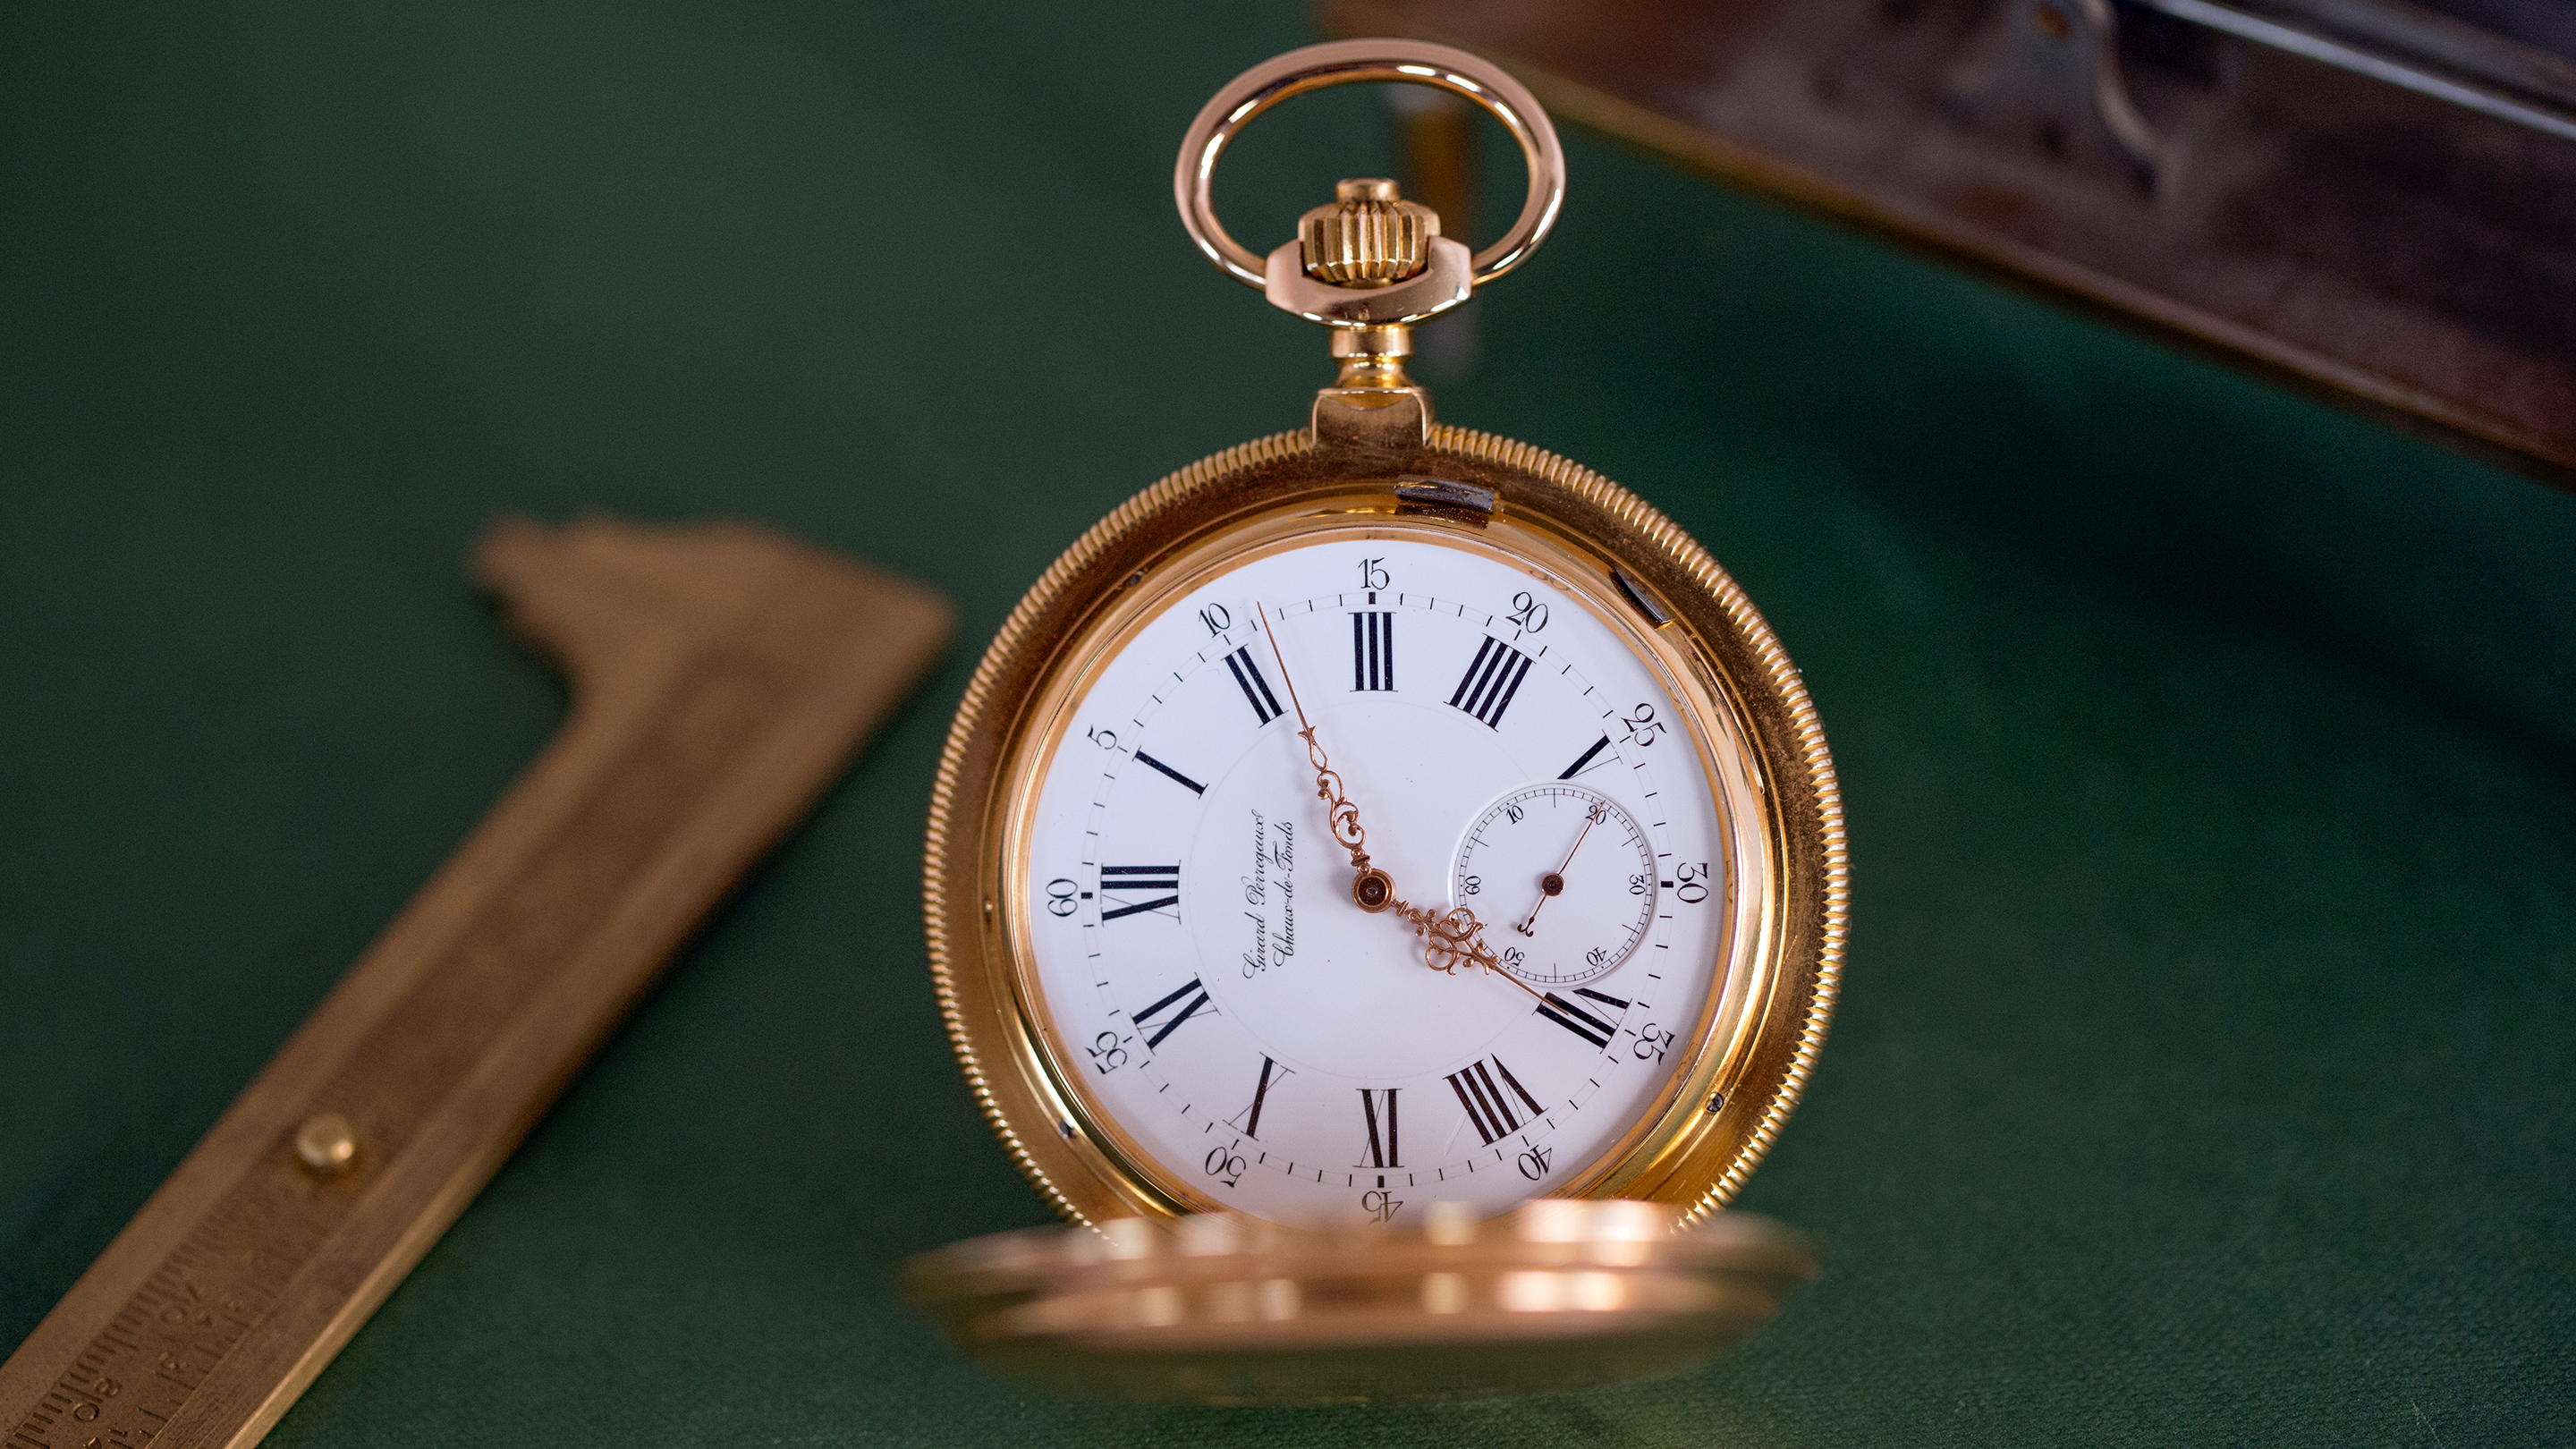 Antique Jewelry & Watches Girard Perregaux 18k Solid Yellow Gold Enamel Dial Pocket Watch